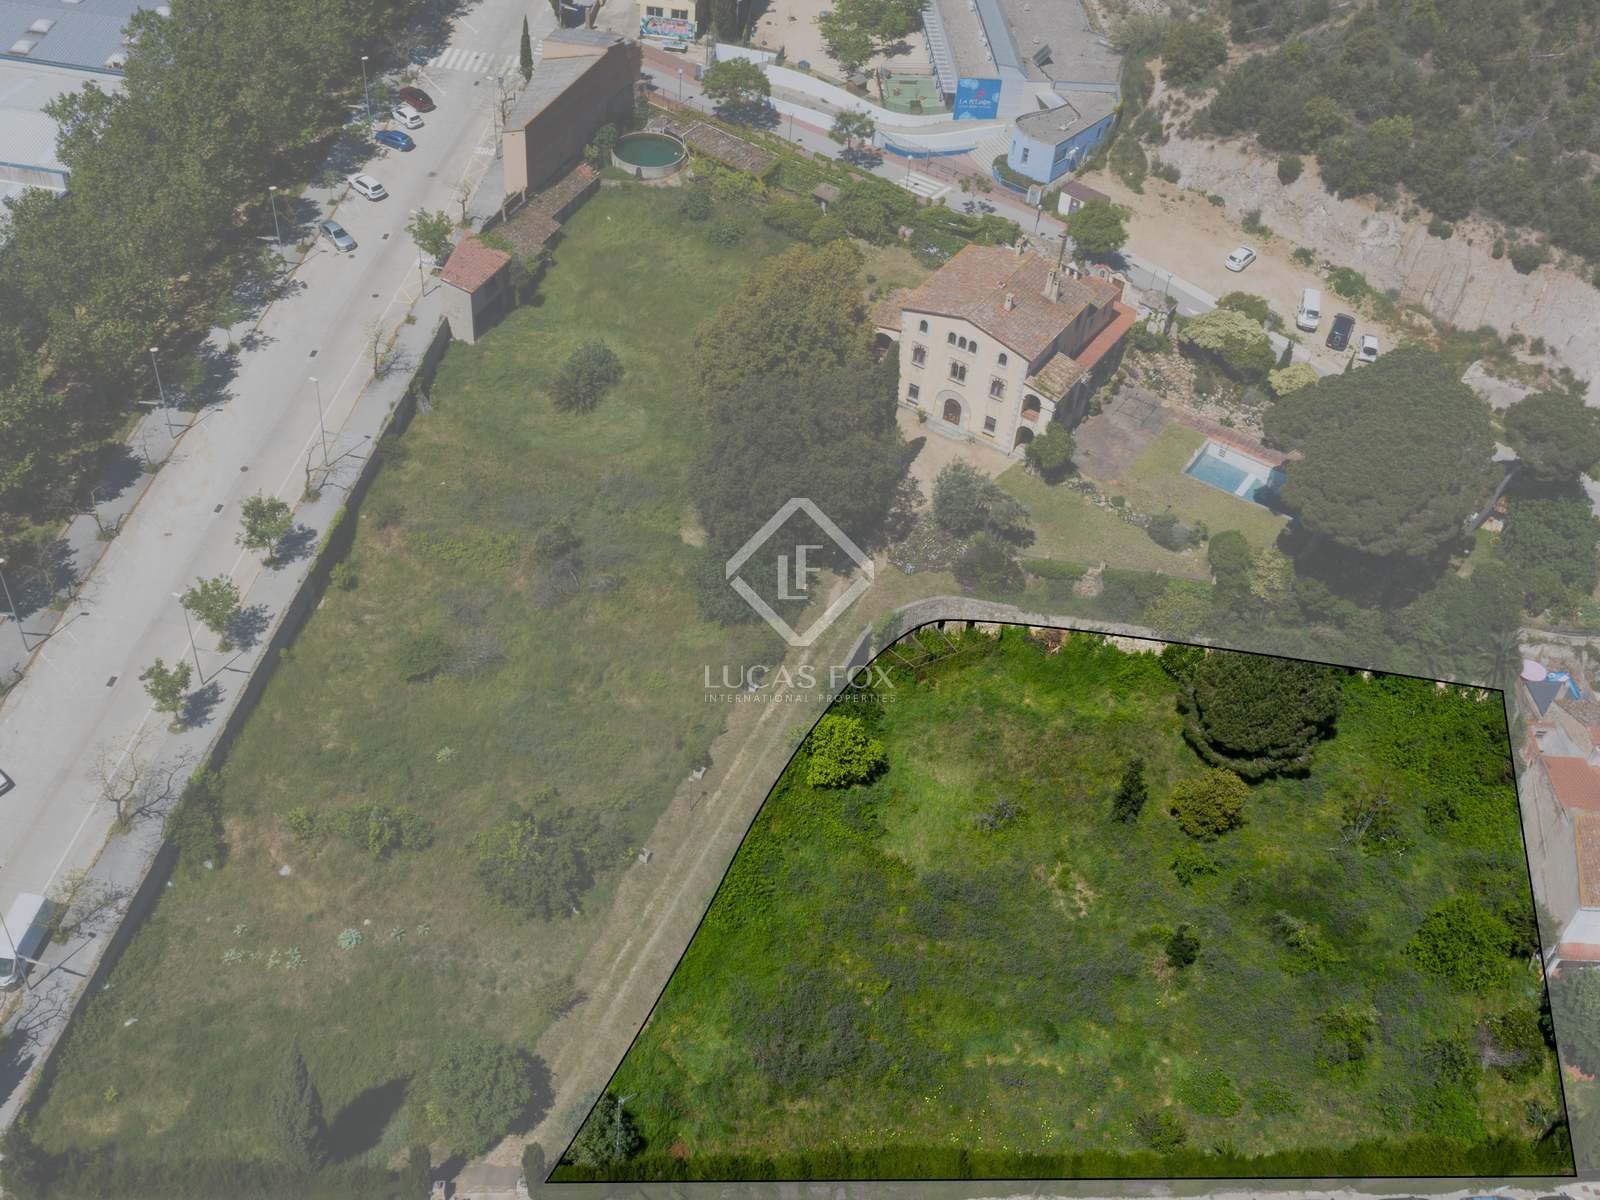 Land : Image of the property